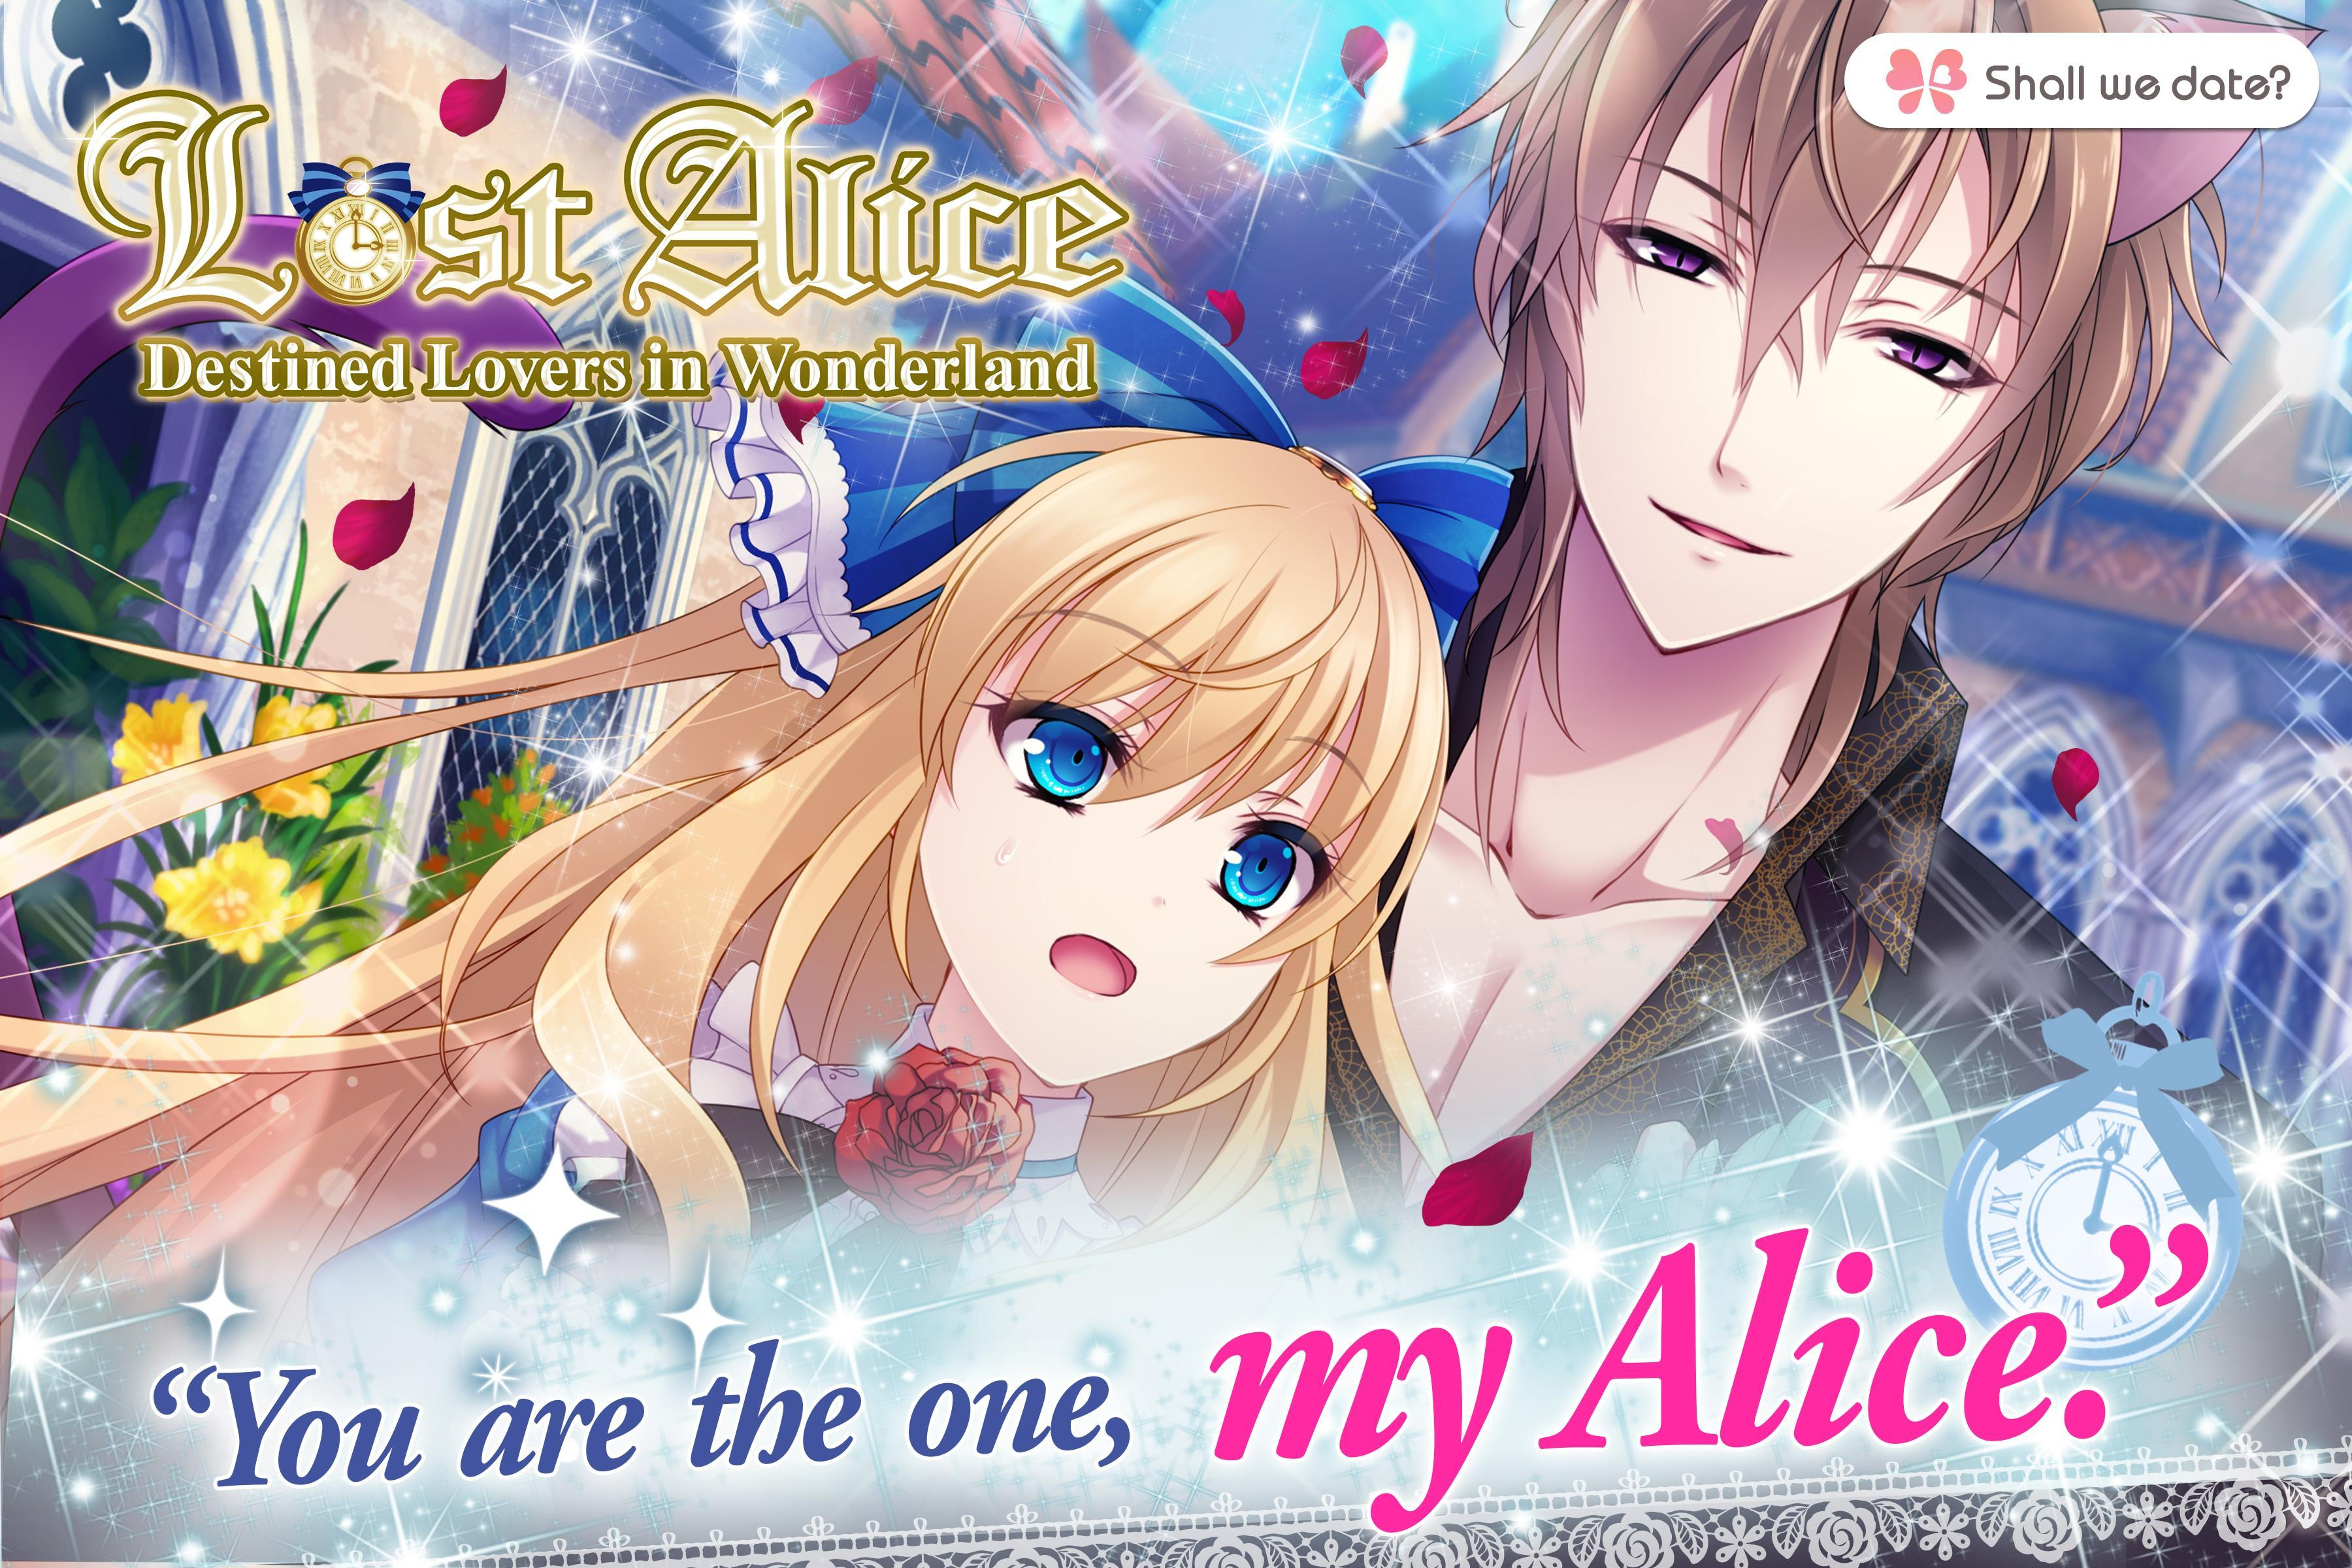 Lost Alice - otome game/dating sim #shall we date 1.5.1 Screenshot 10